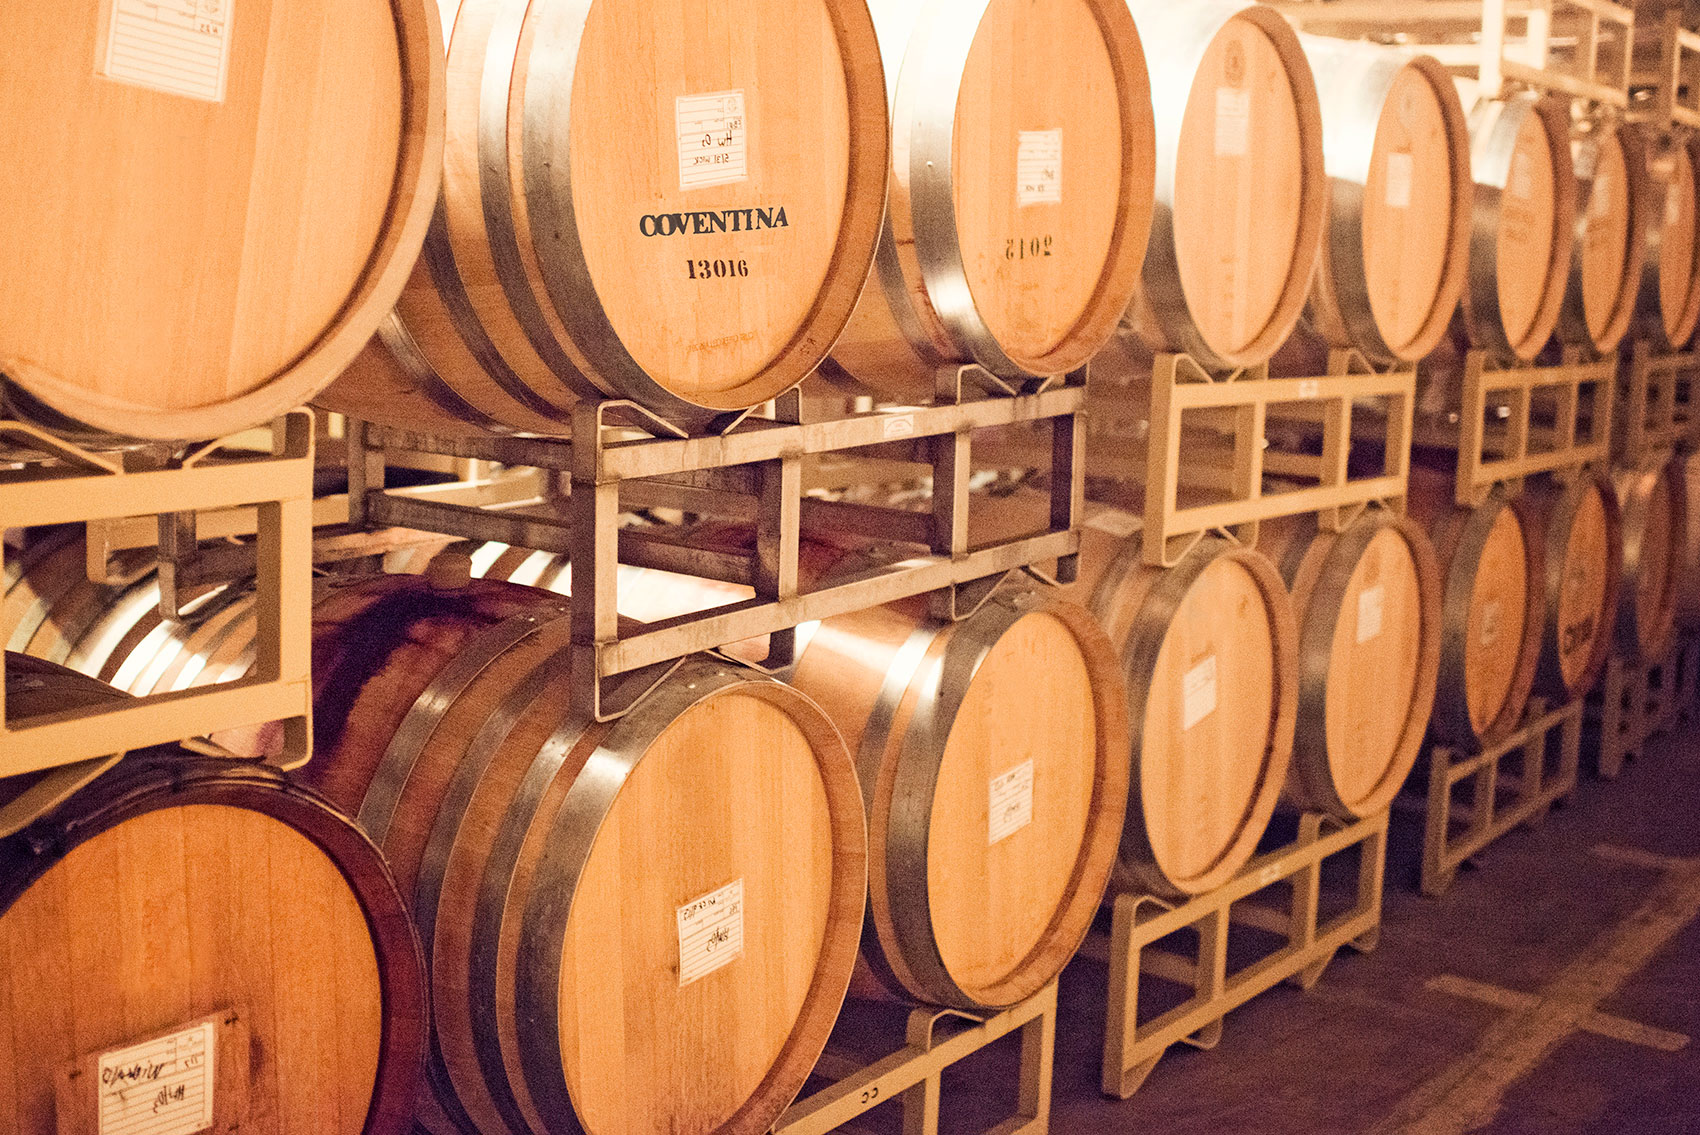 Coventina Wine Barrels Oregon